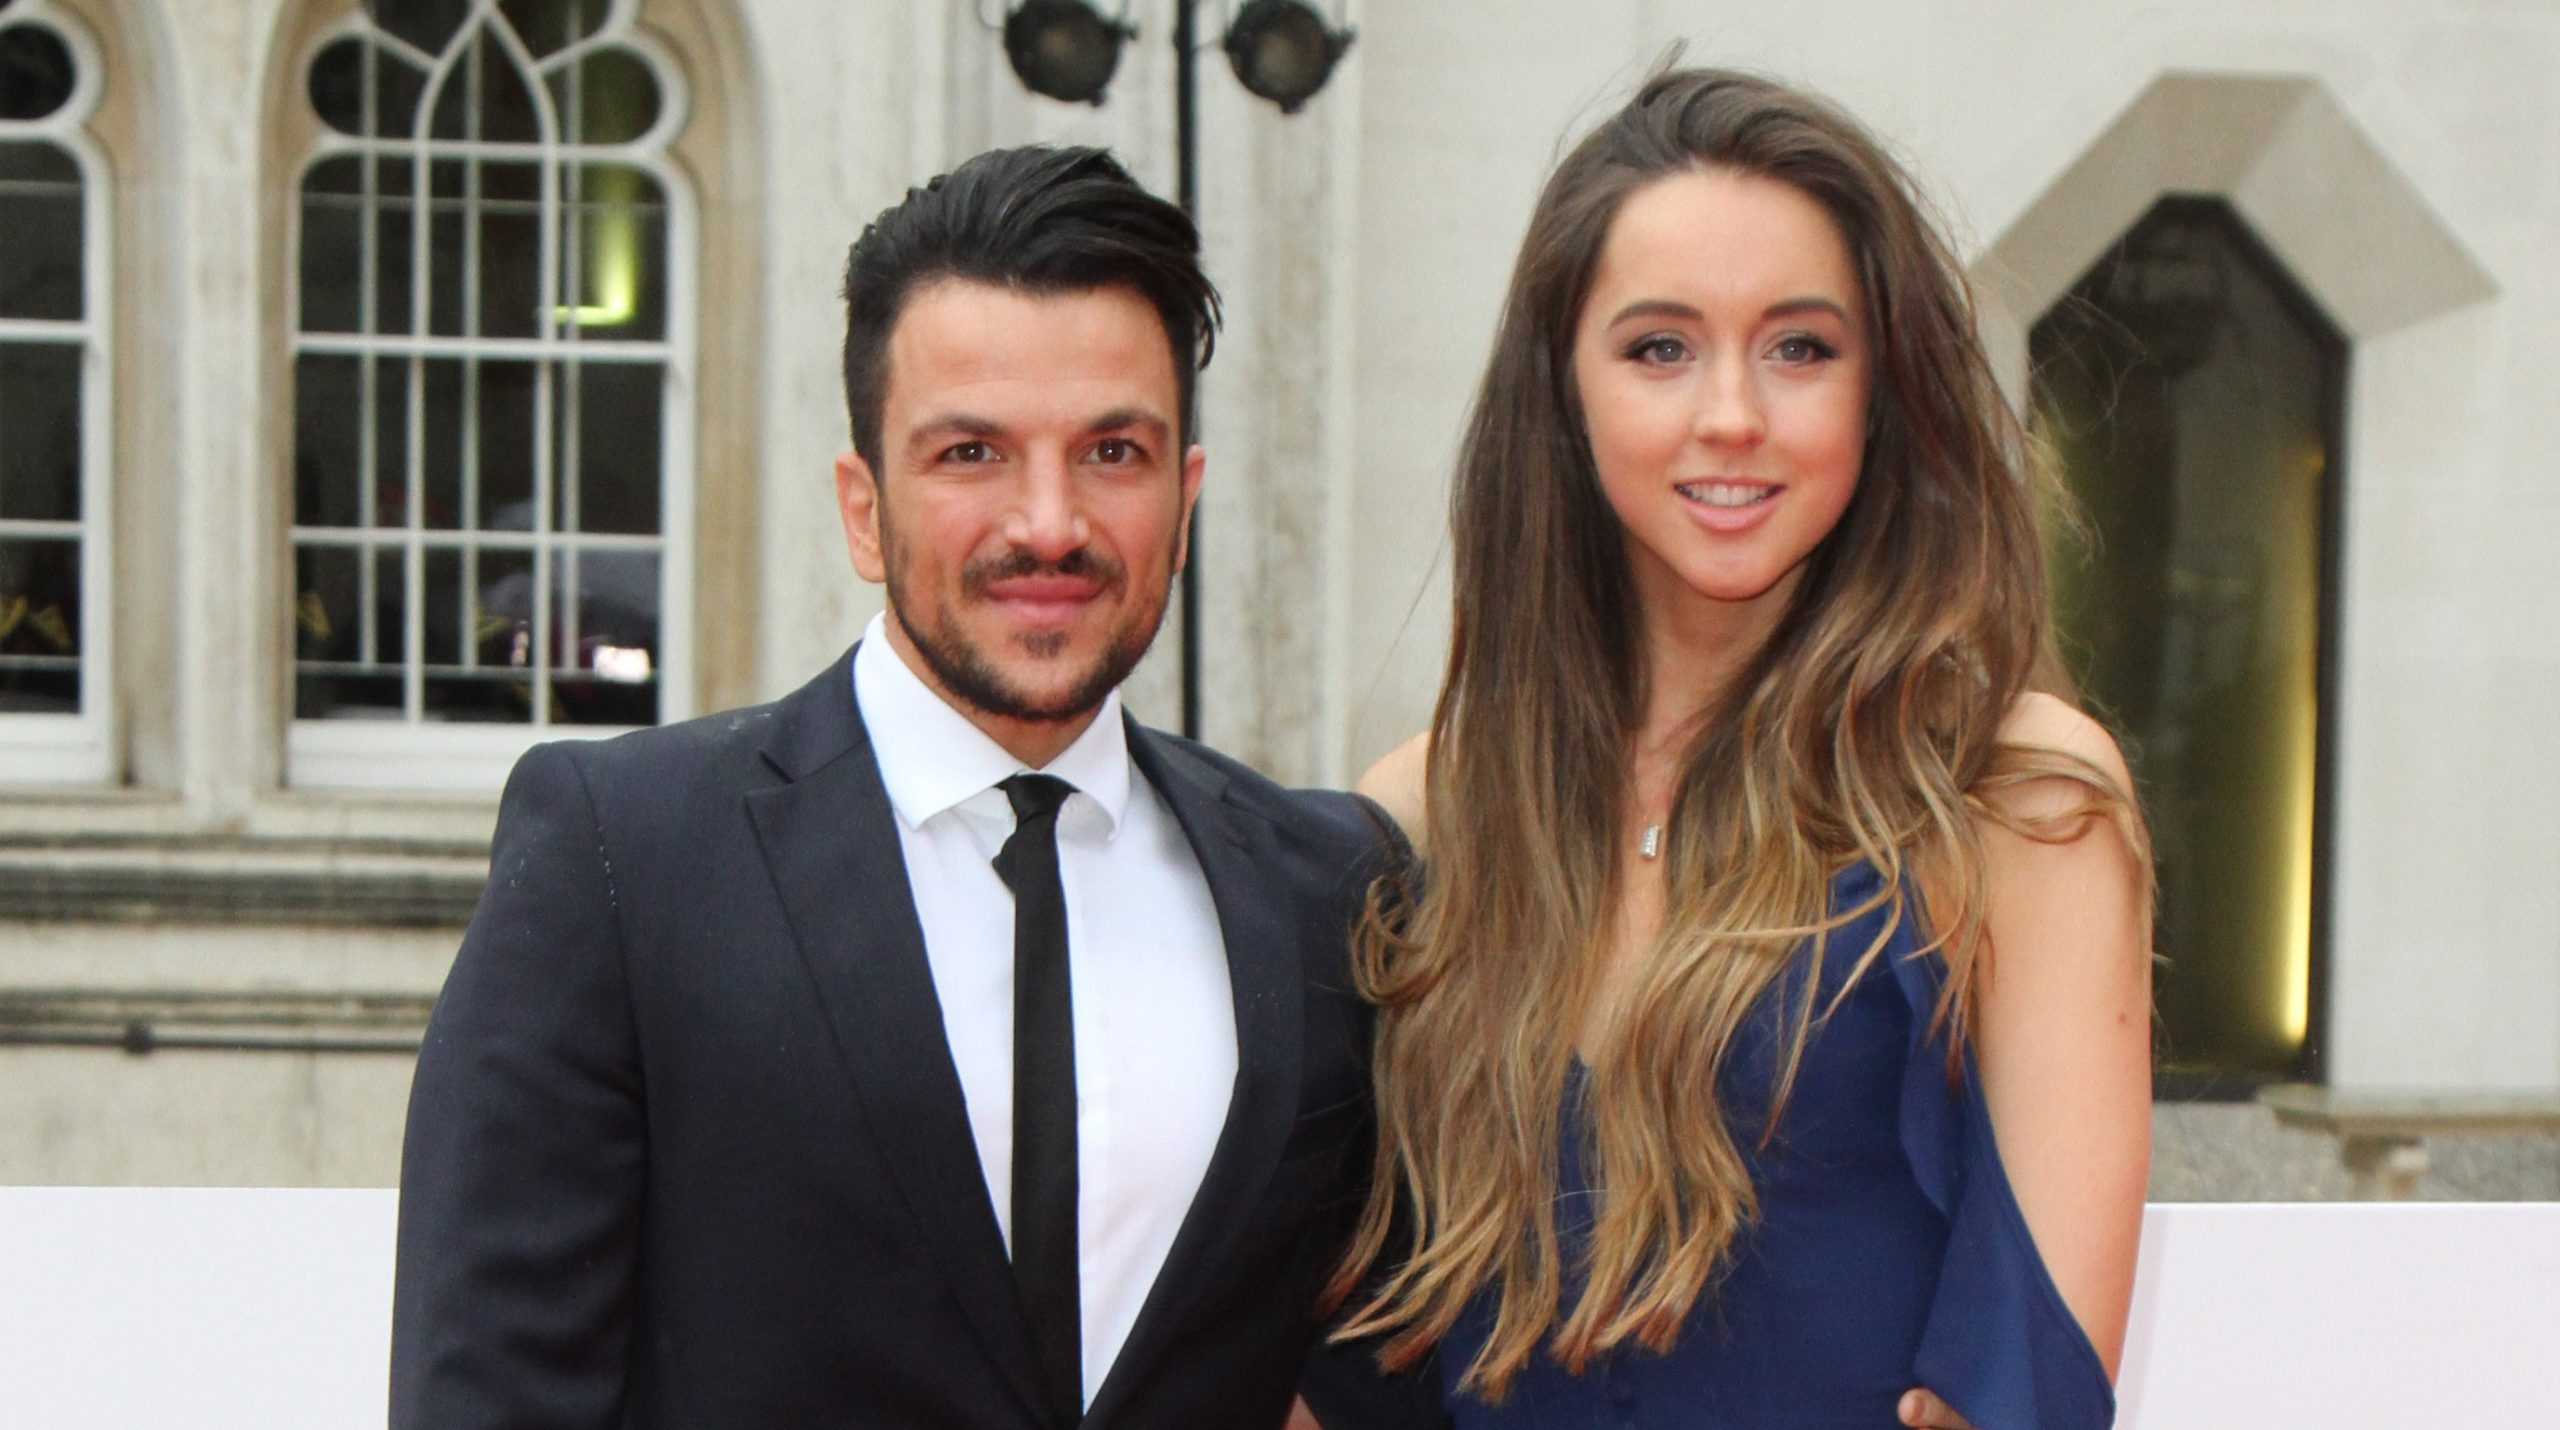 Peter Andre mocked by wife Emily and daughter Princess over his age